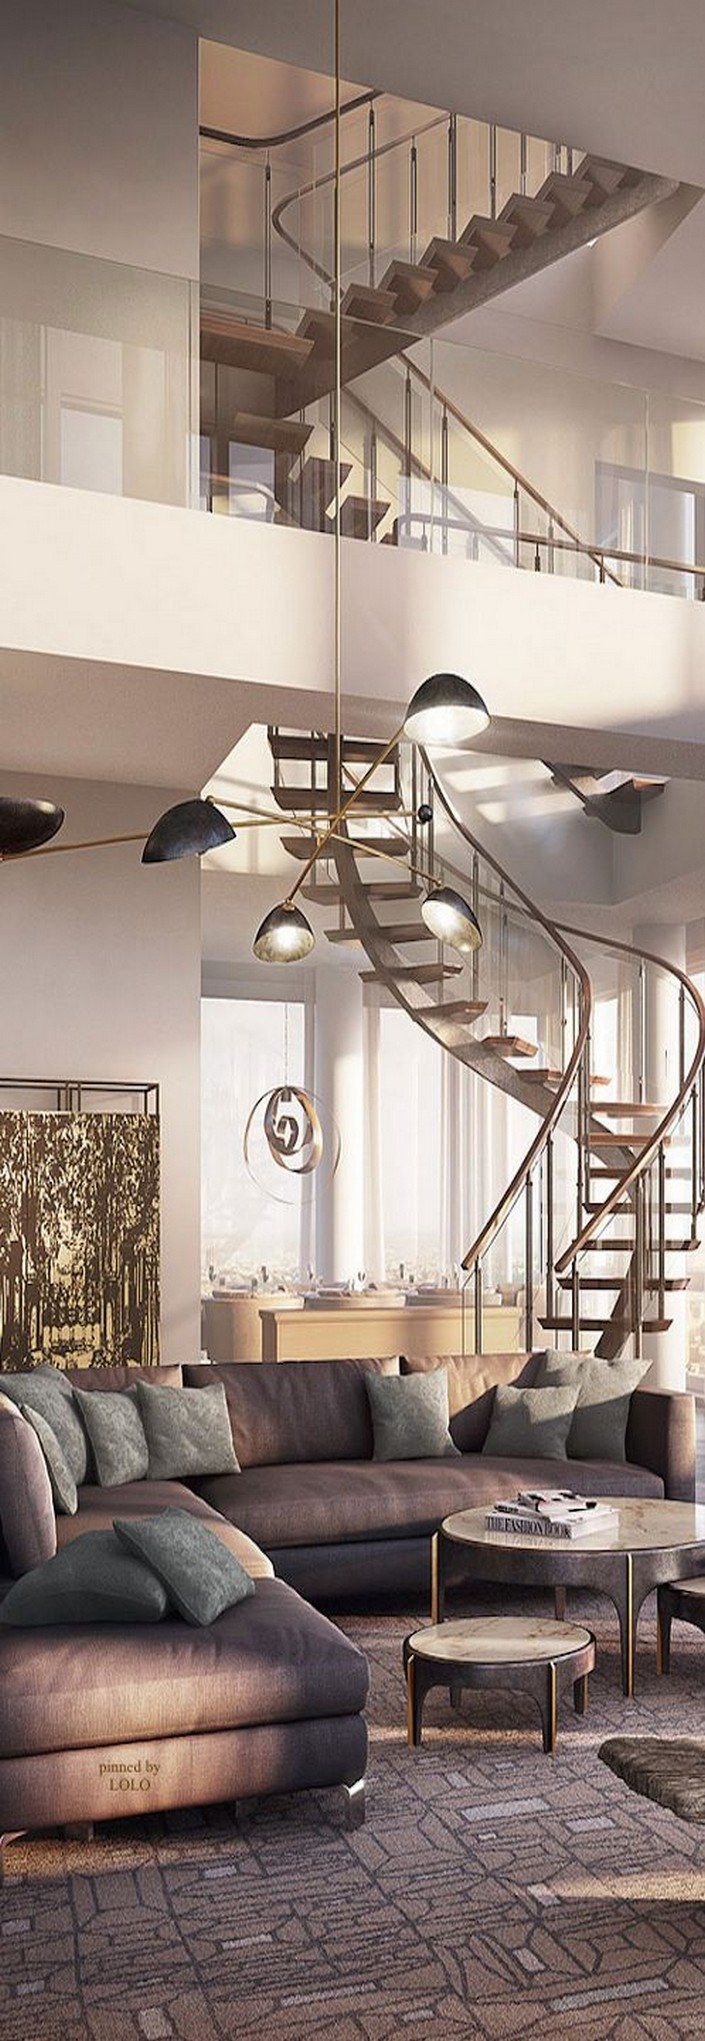 how to decorate furniture. How To Decorate A Penthouse With Bespoke Furniture HOW TO DECORATE PENTHOUSE